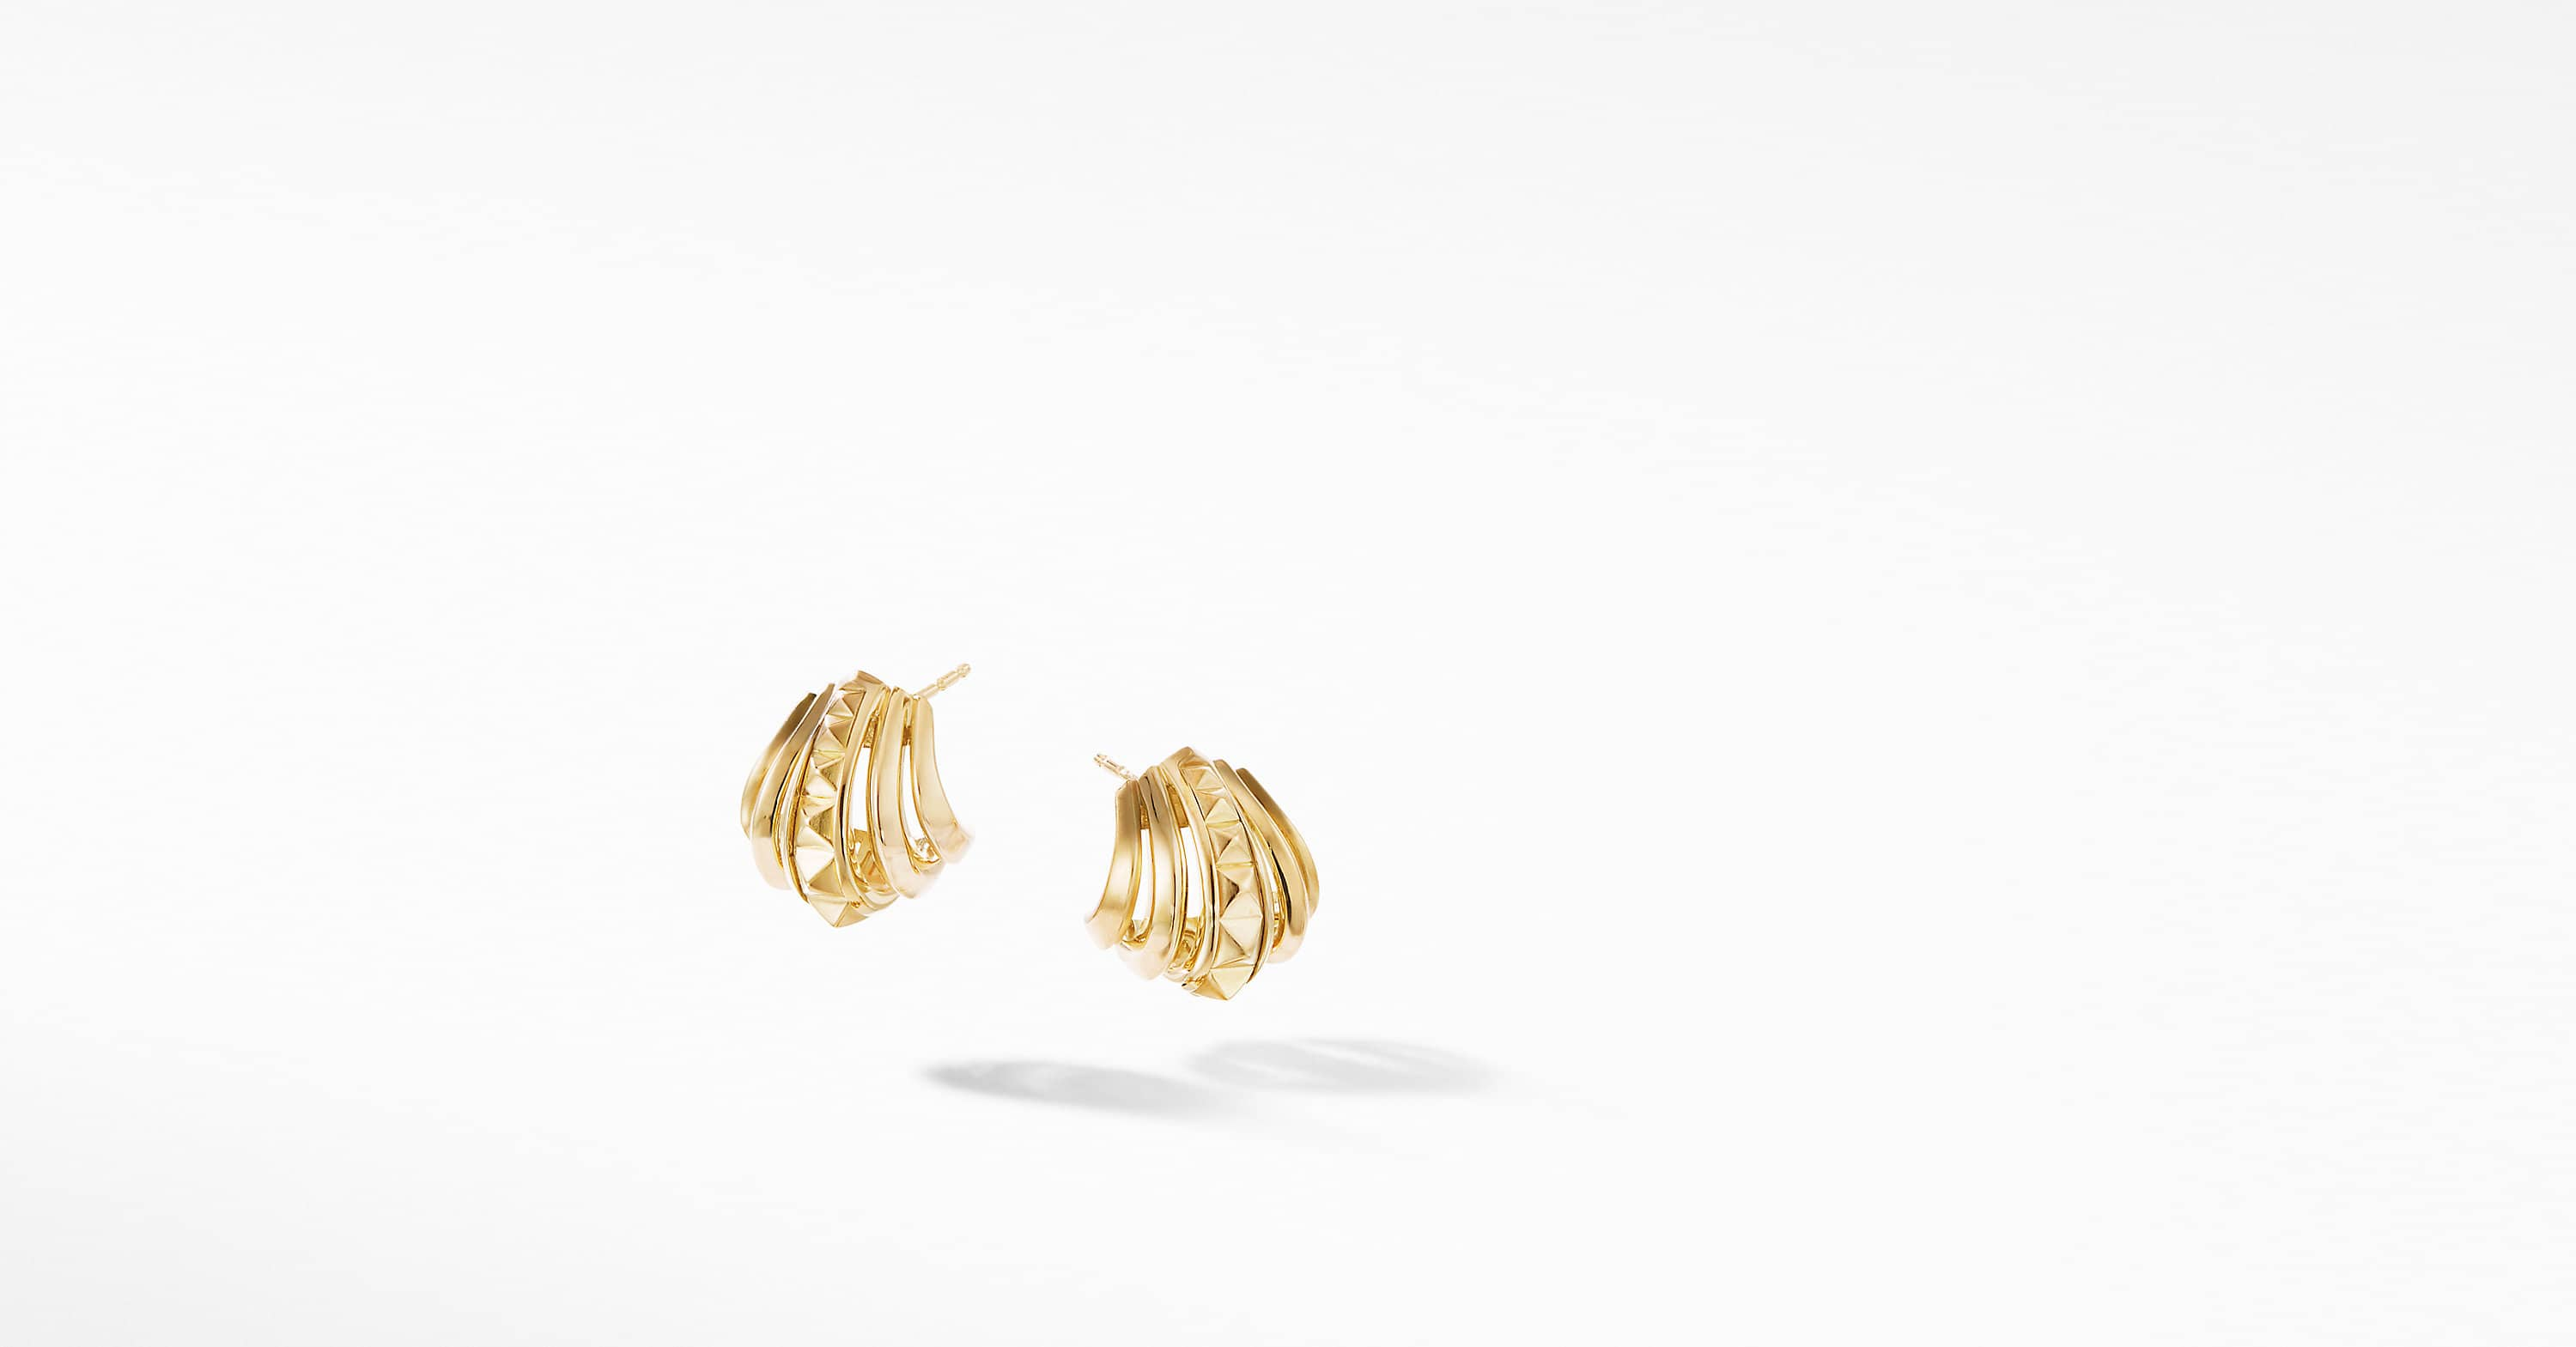 Modern Renaissance Huggie Earrings in 18K Yellow Gold